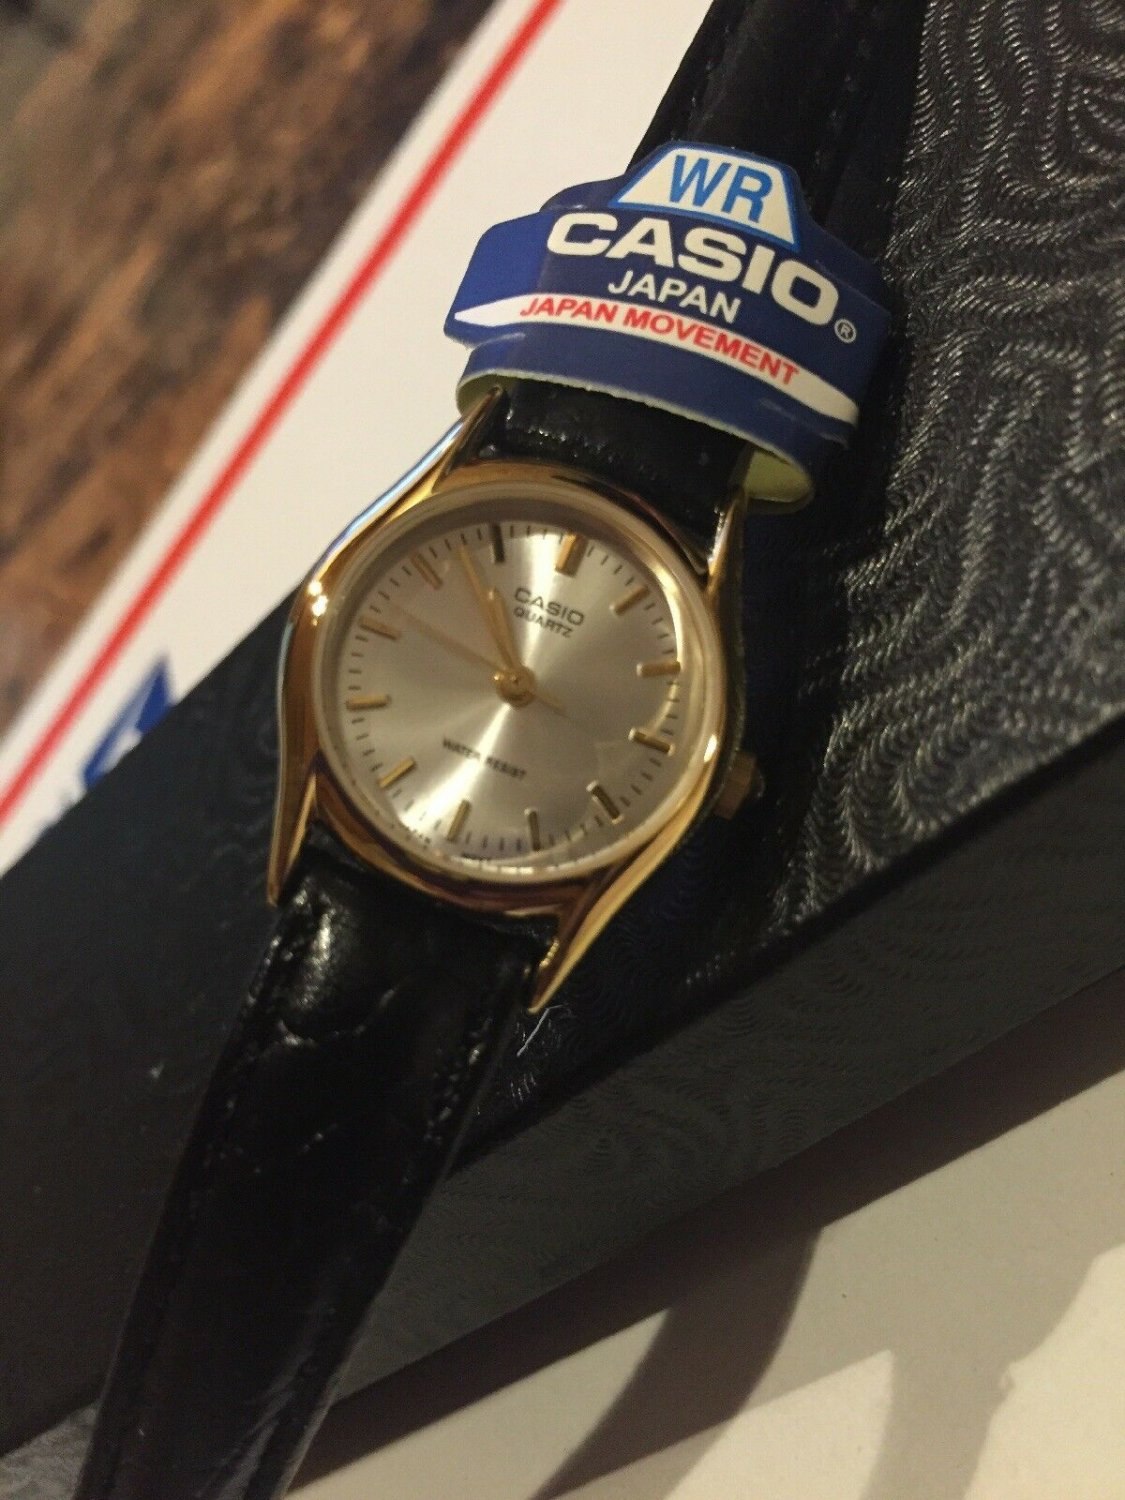 Casio Women's Black Leather Strap Watch, Pale Gold Dial, LTP1094Q-7A extra small